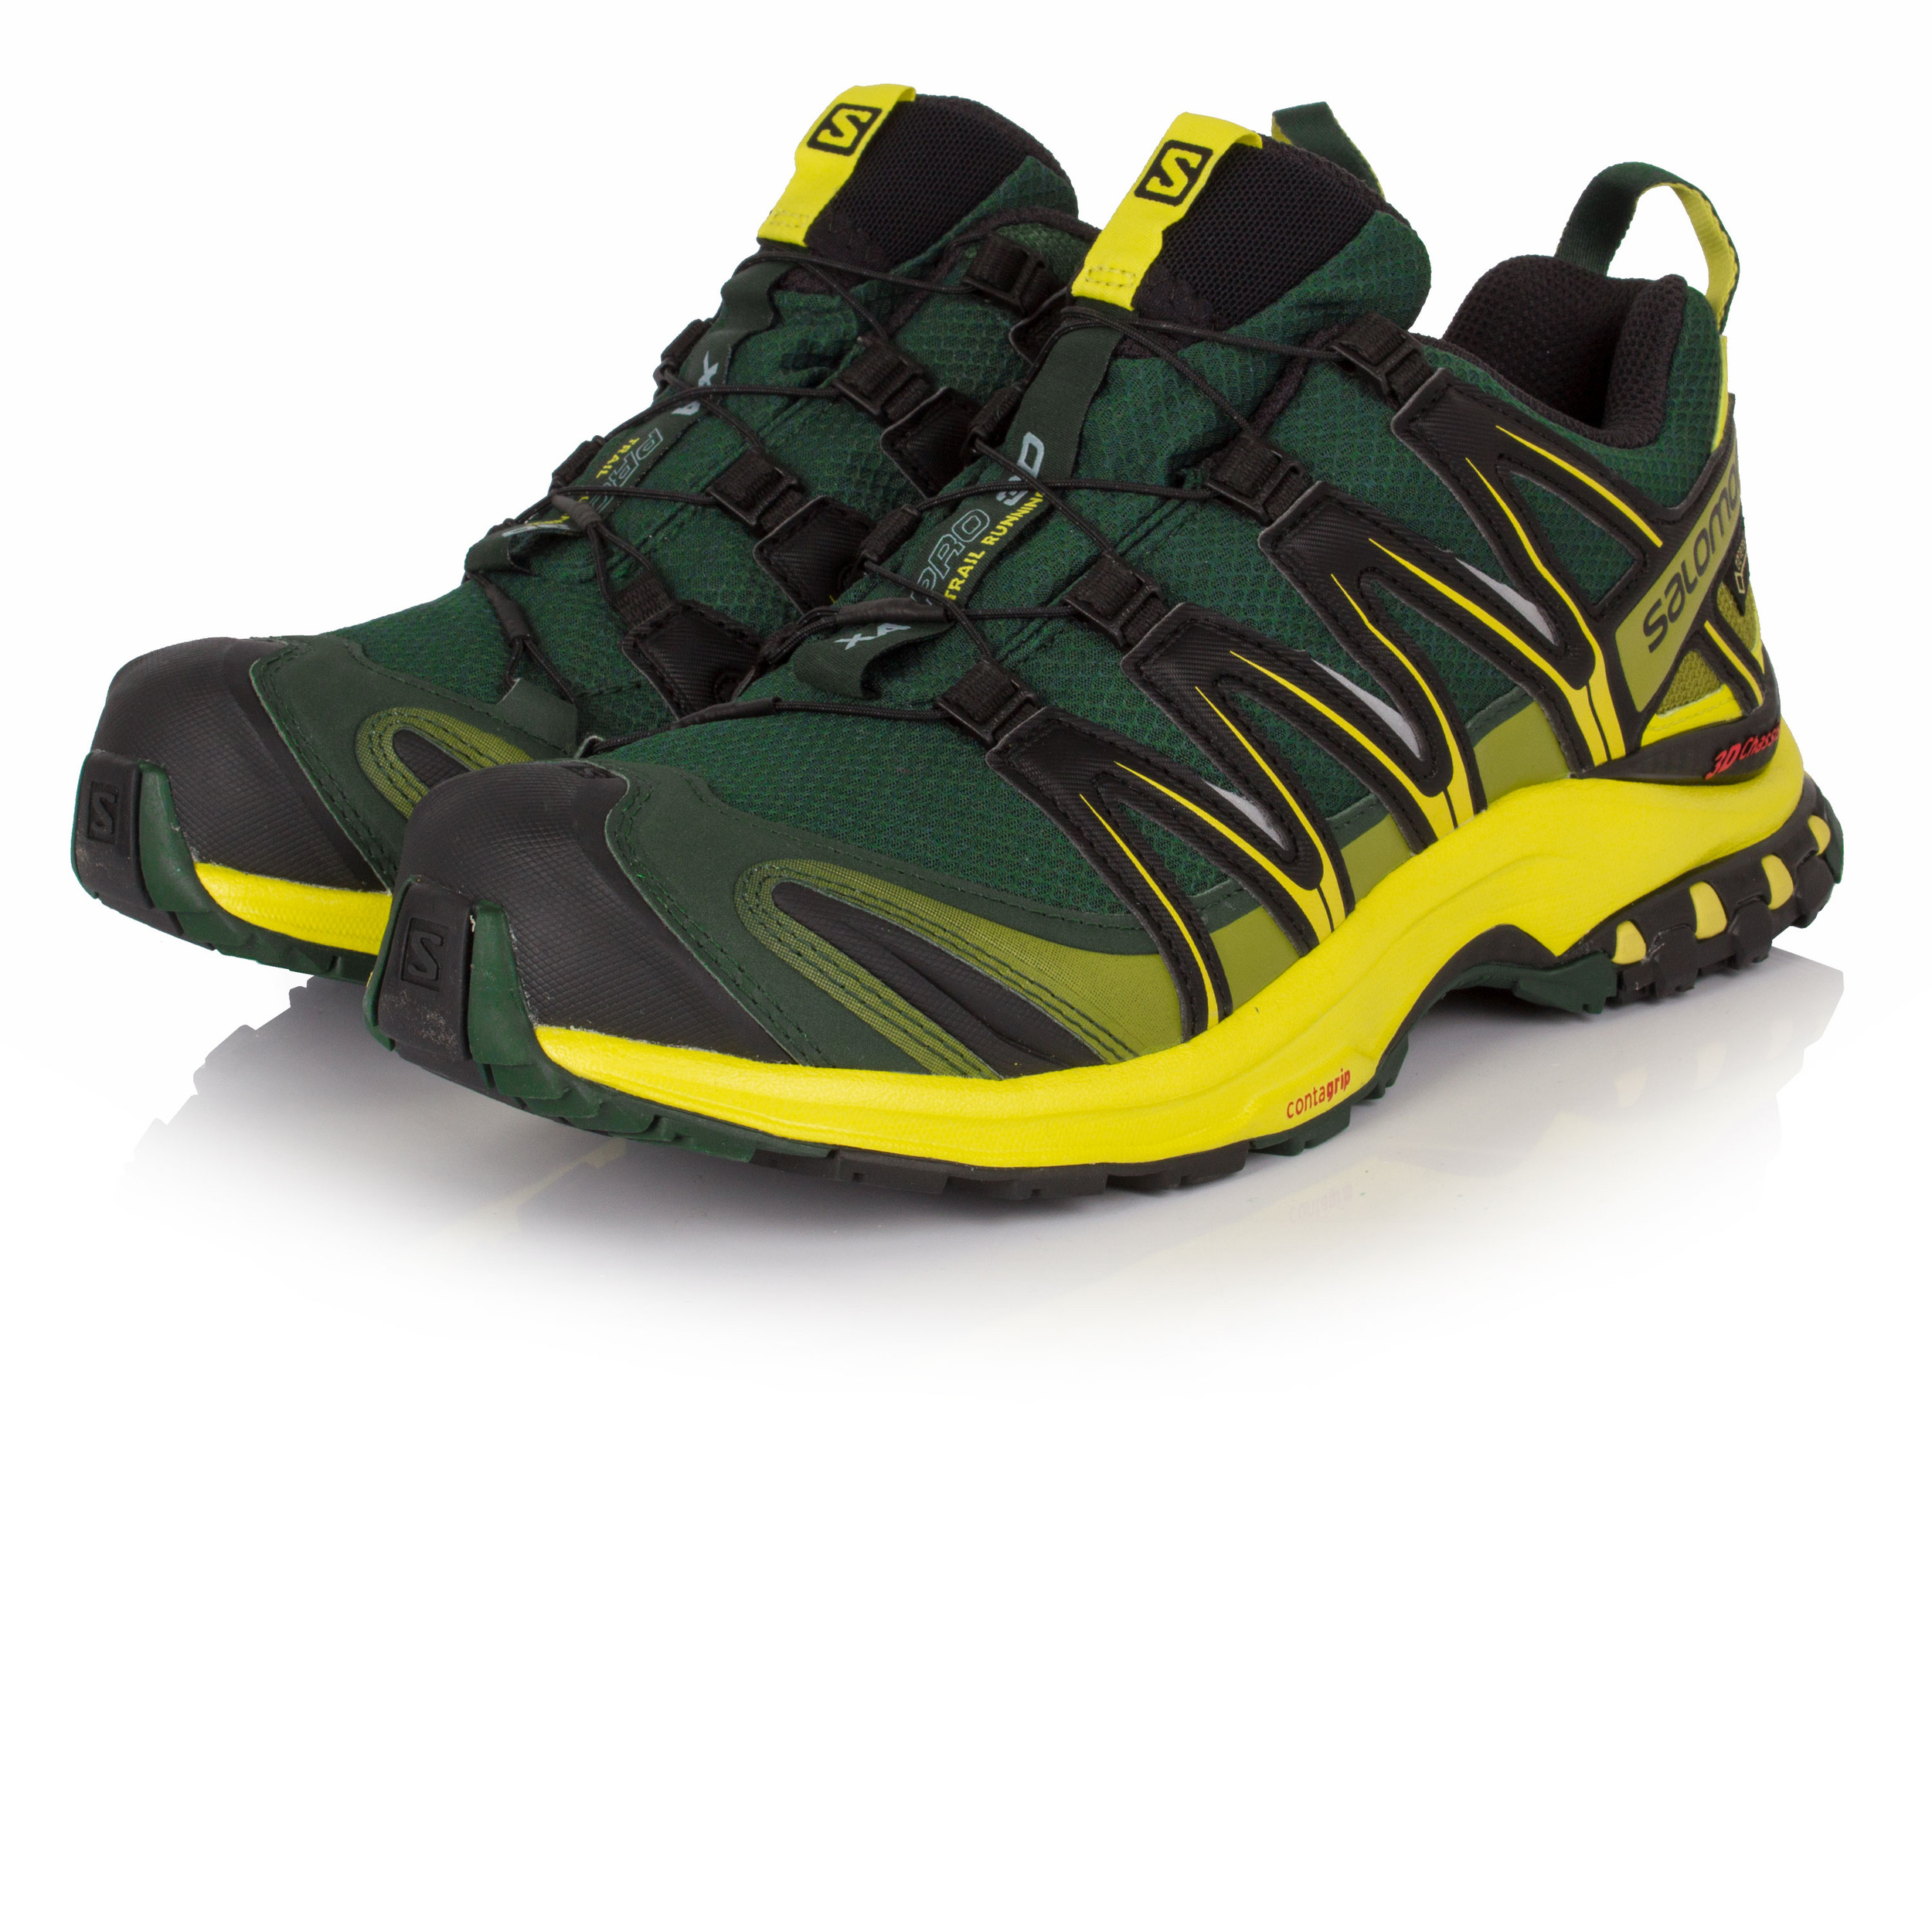 Salomon XA Pro 3D Mens Yellow Black Gore Tex Running Sports Shoes Trainers